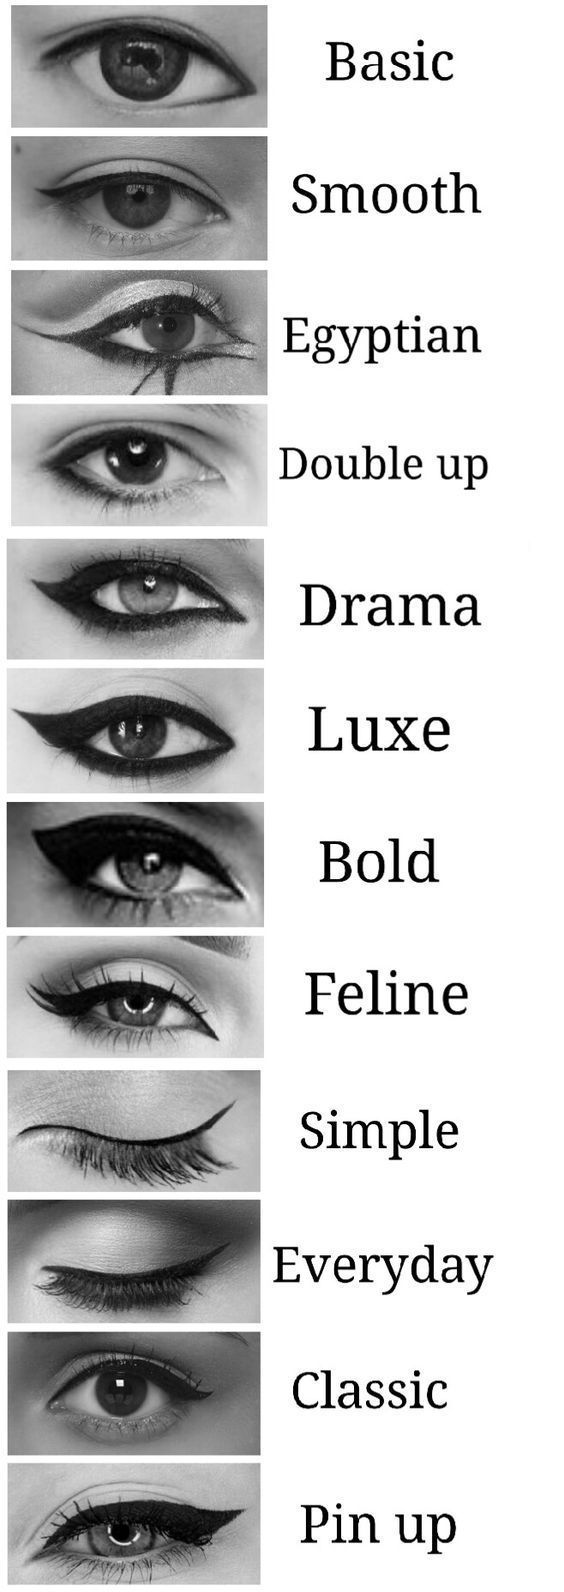 How to Apply Eyeliner - all things fashion - How to Apply Eyeliner - all things fashion -